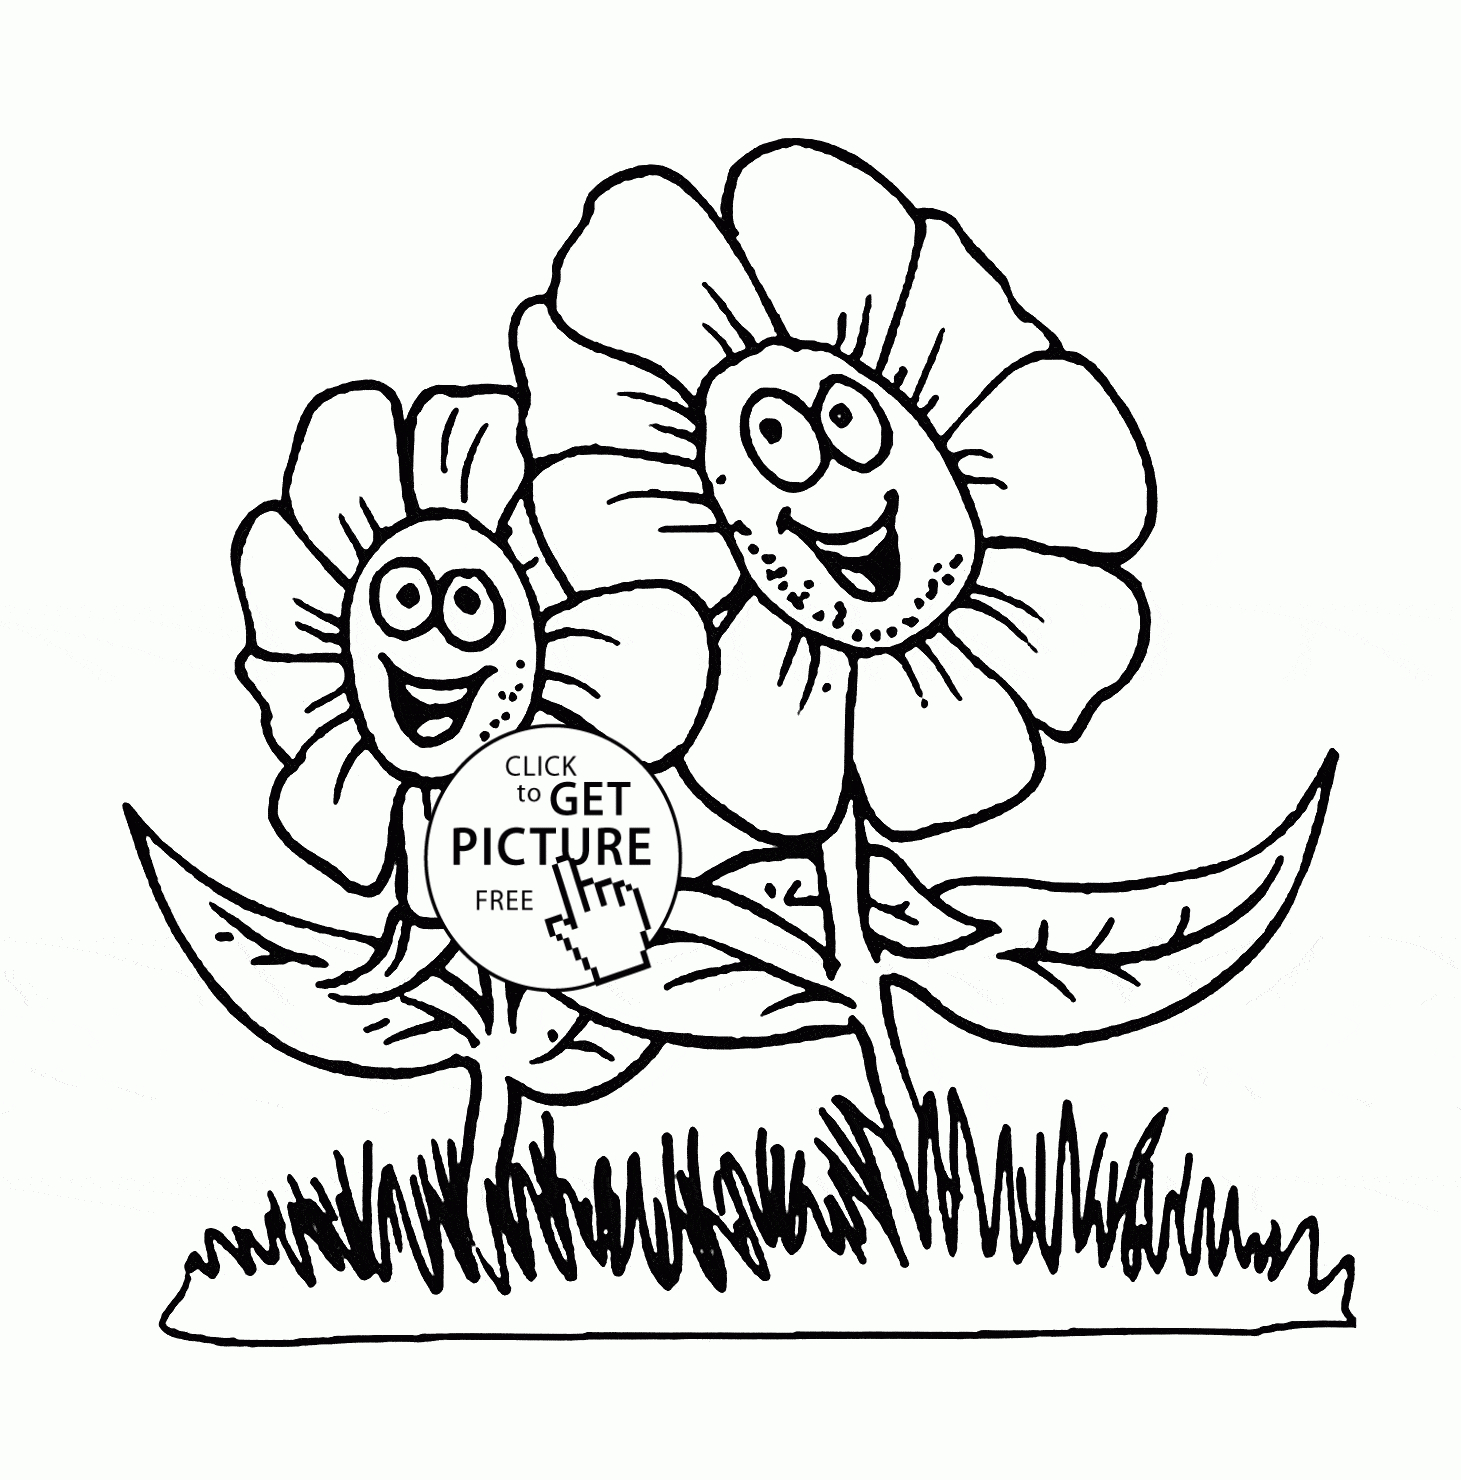 1461x1480 Flower Drawings Black And White For Tattoos Tumblr Cartoon Step